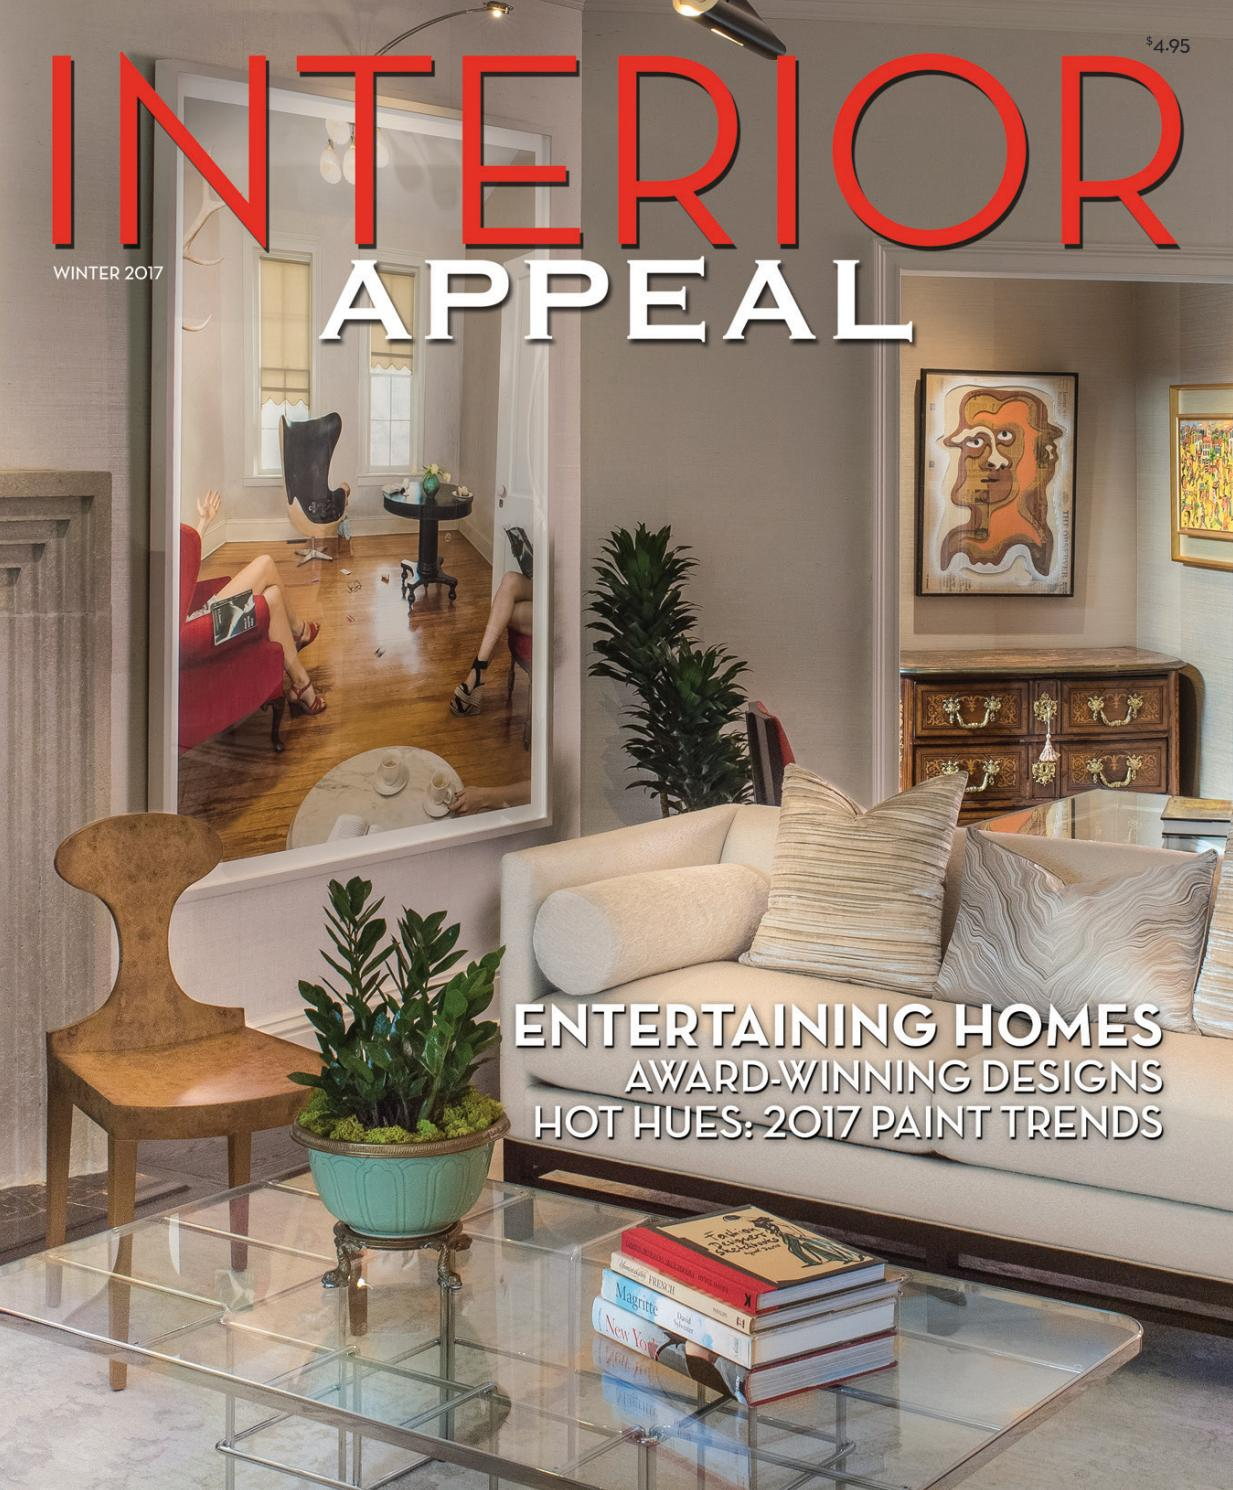 Interior Appeal Winter 2017 by Orange Appeal - issuu